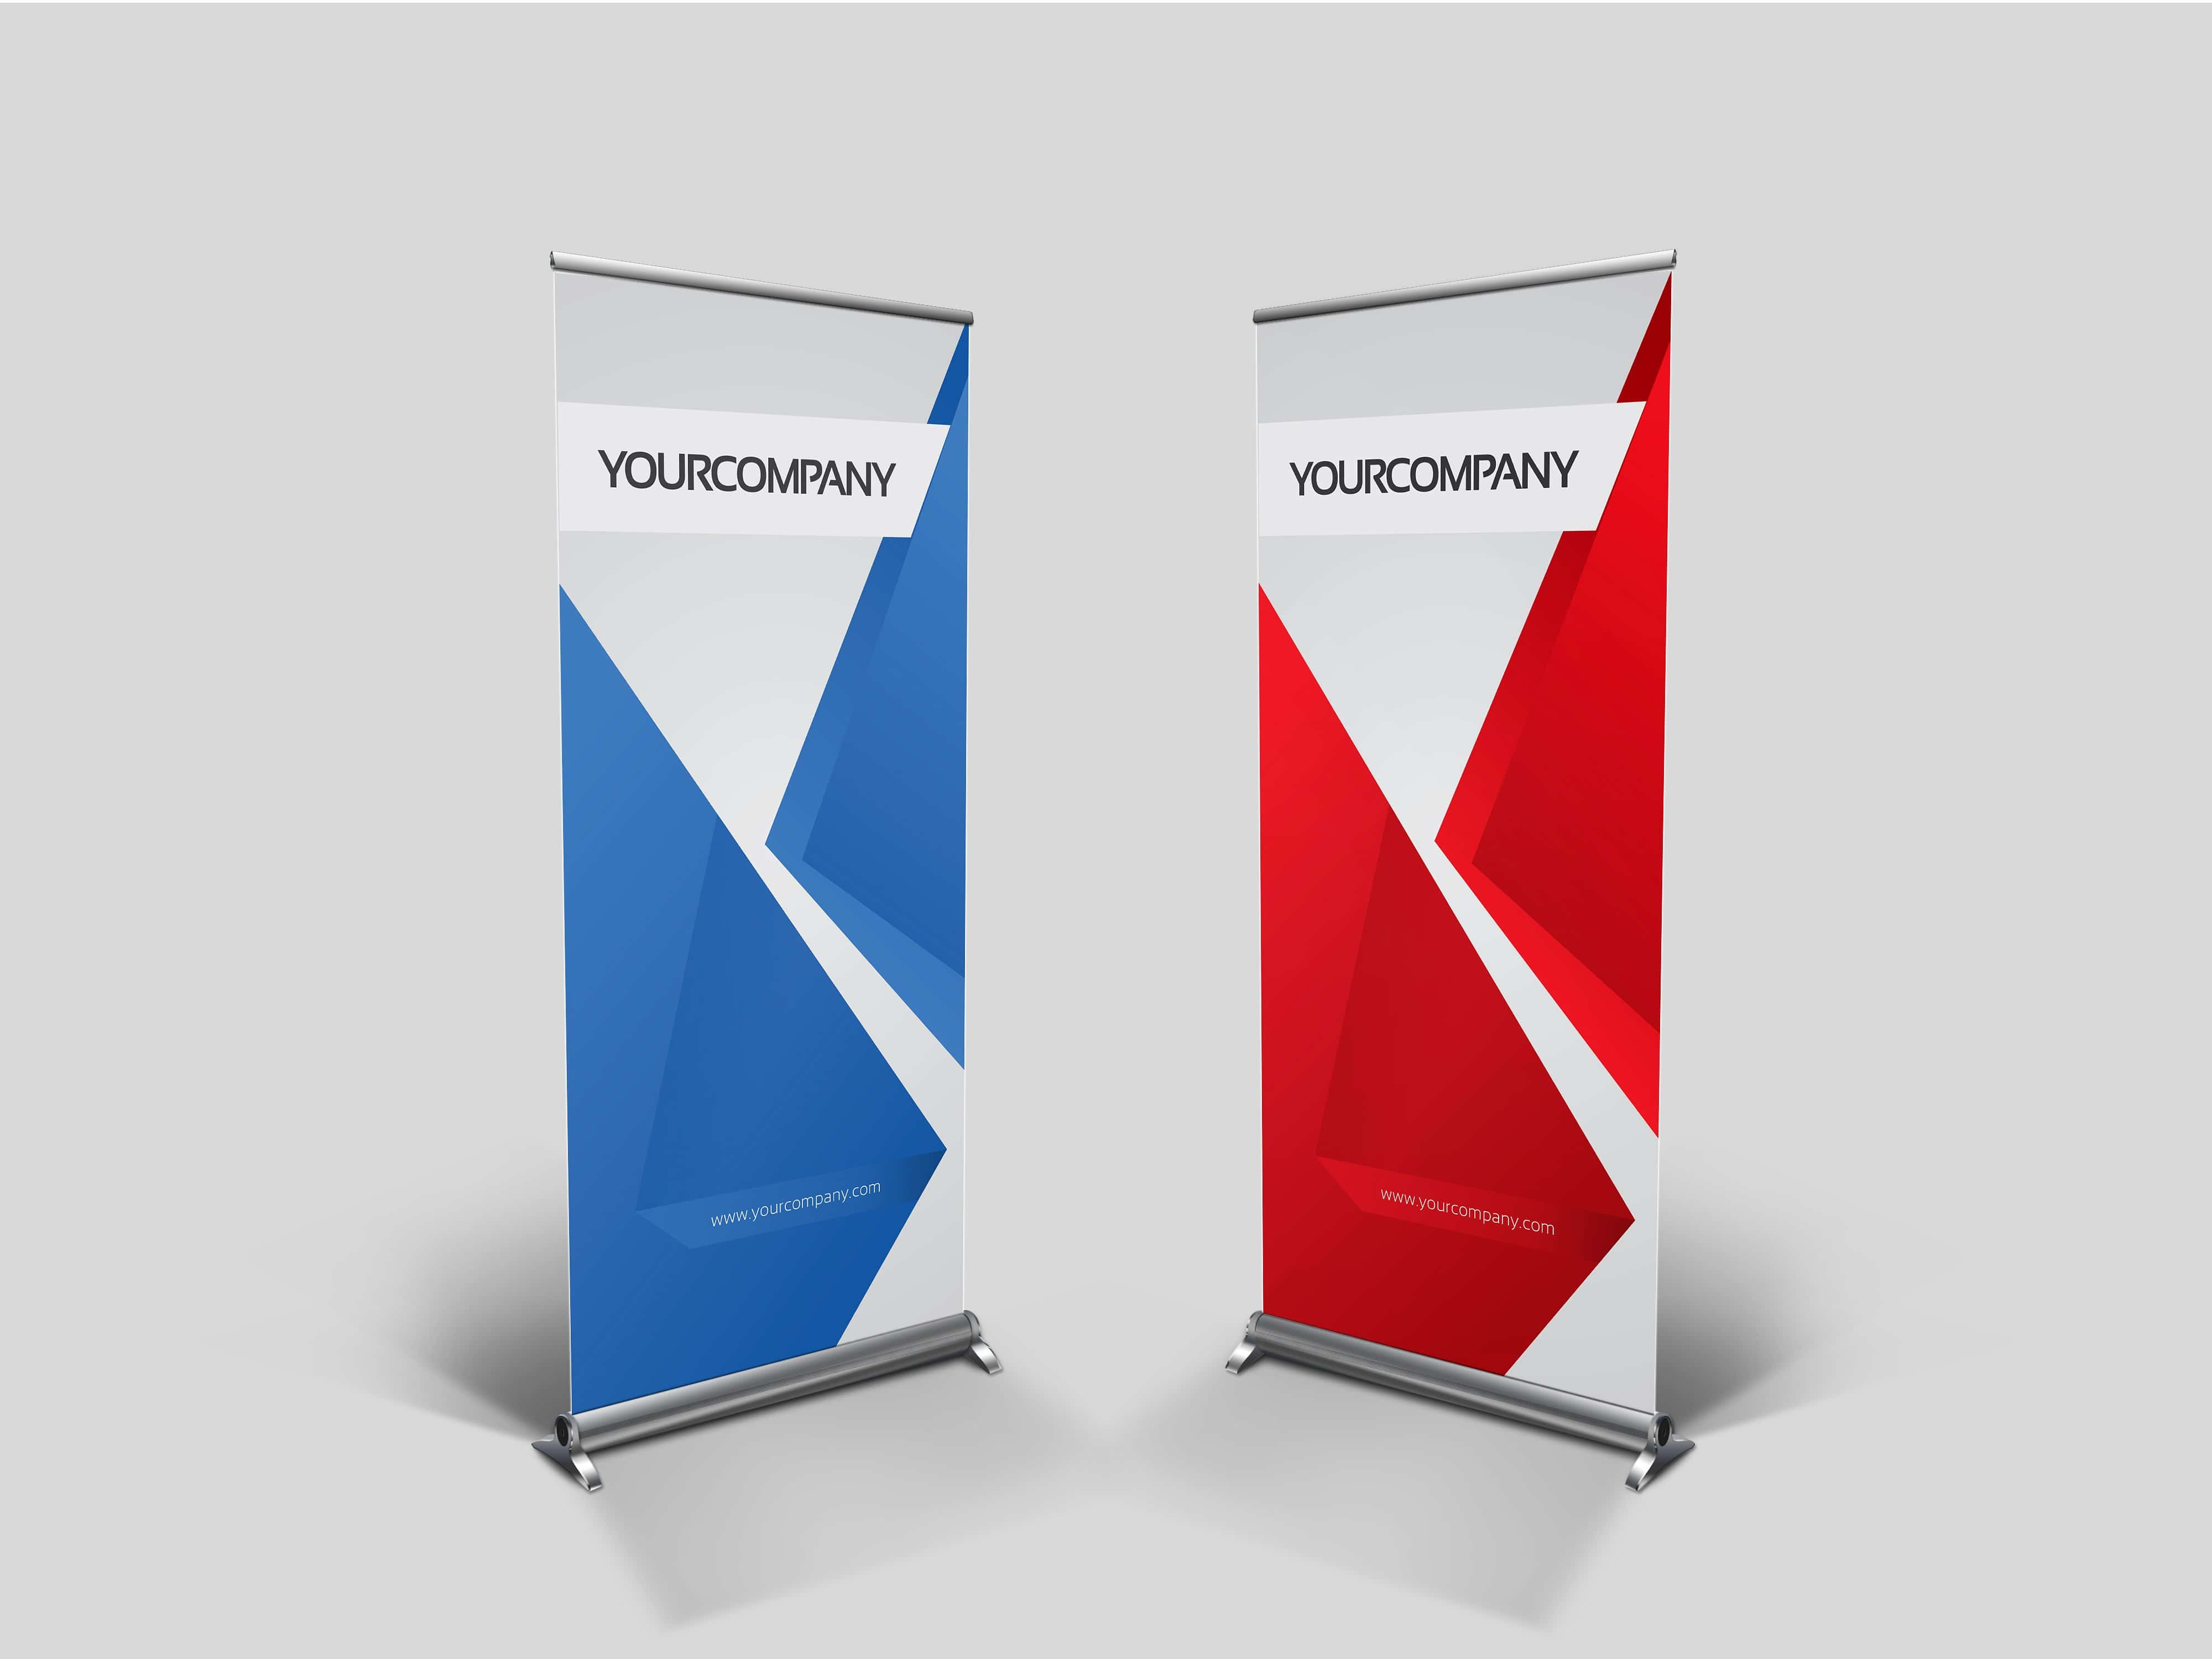 Banners Display Business Article Image